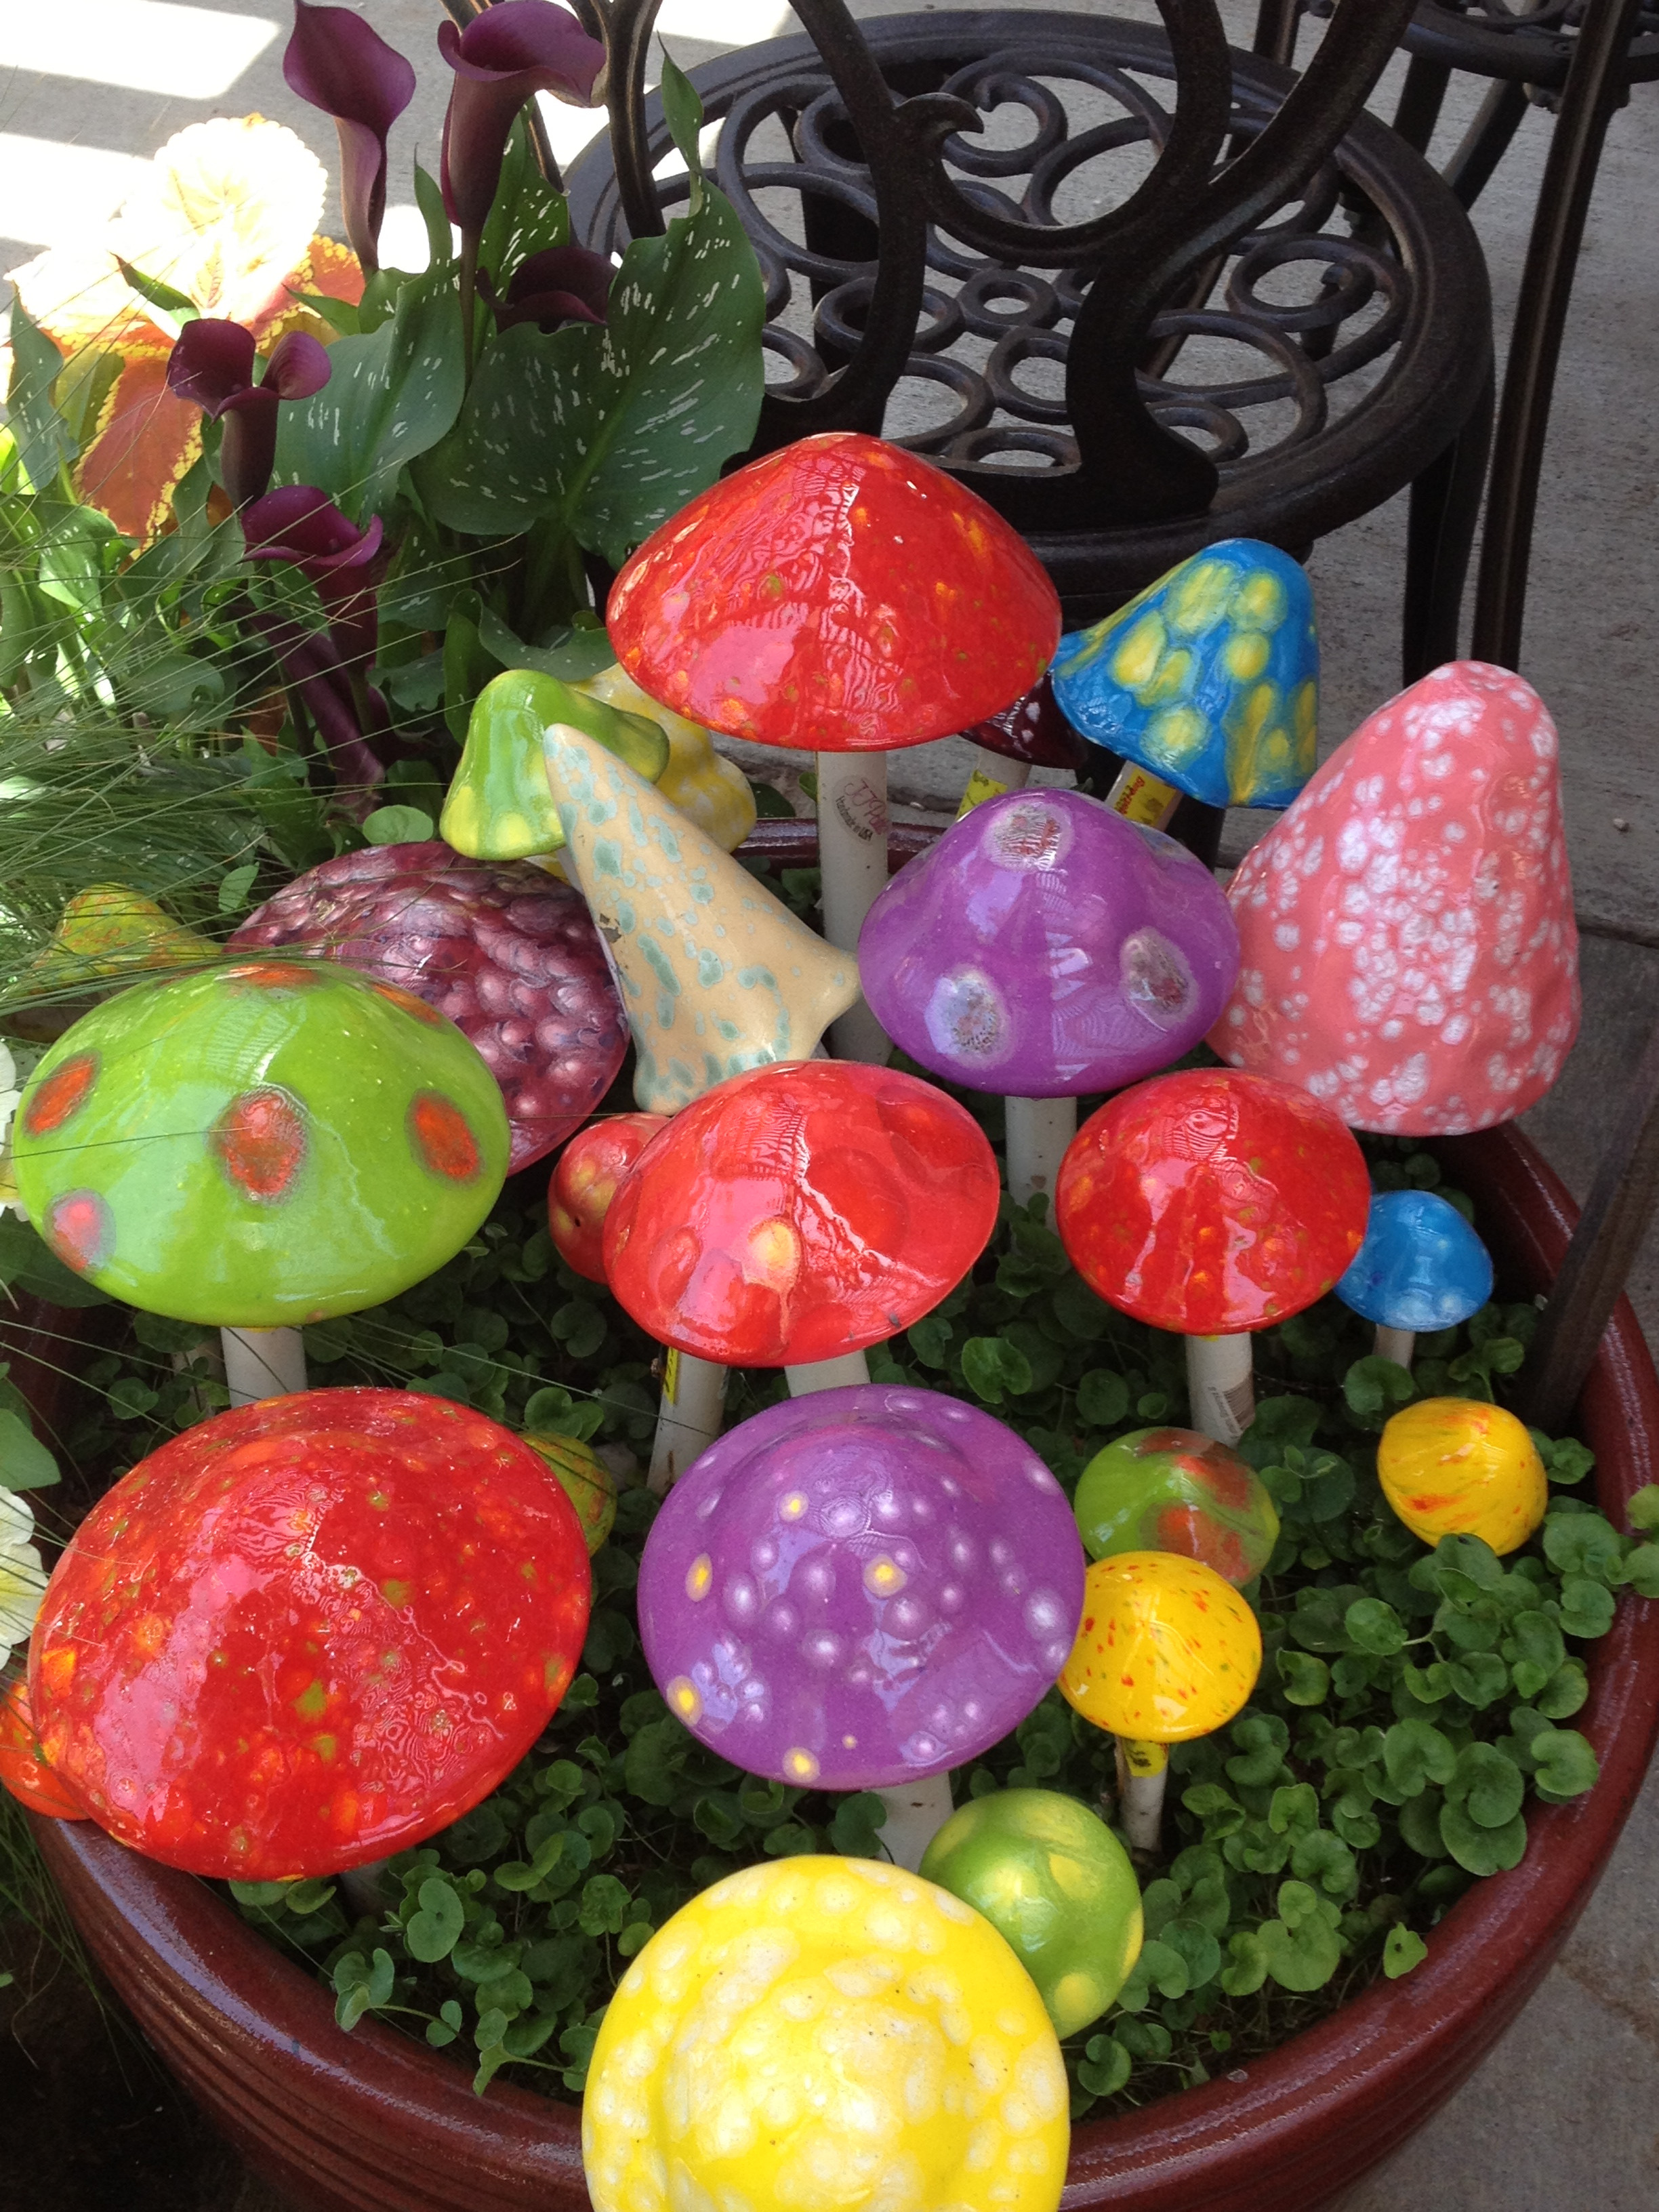 Best ideas about DIY Garden Art . Save or Pin 25 Easy DIY Garden Projects You Can Start Now Now.